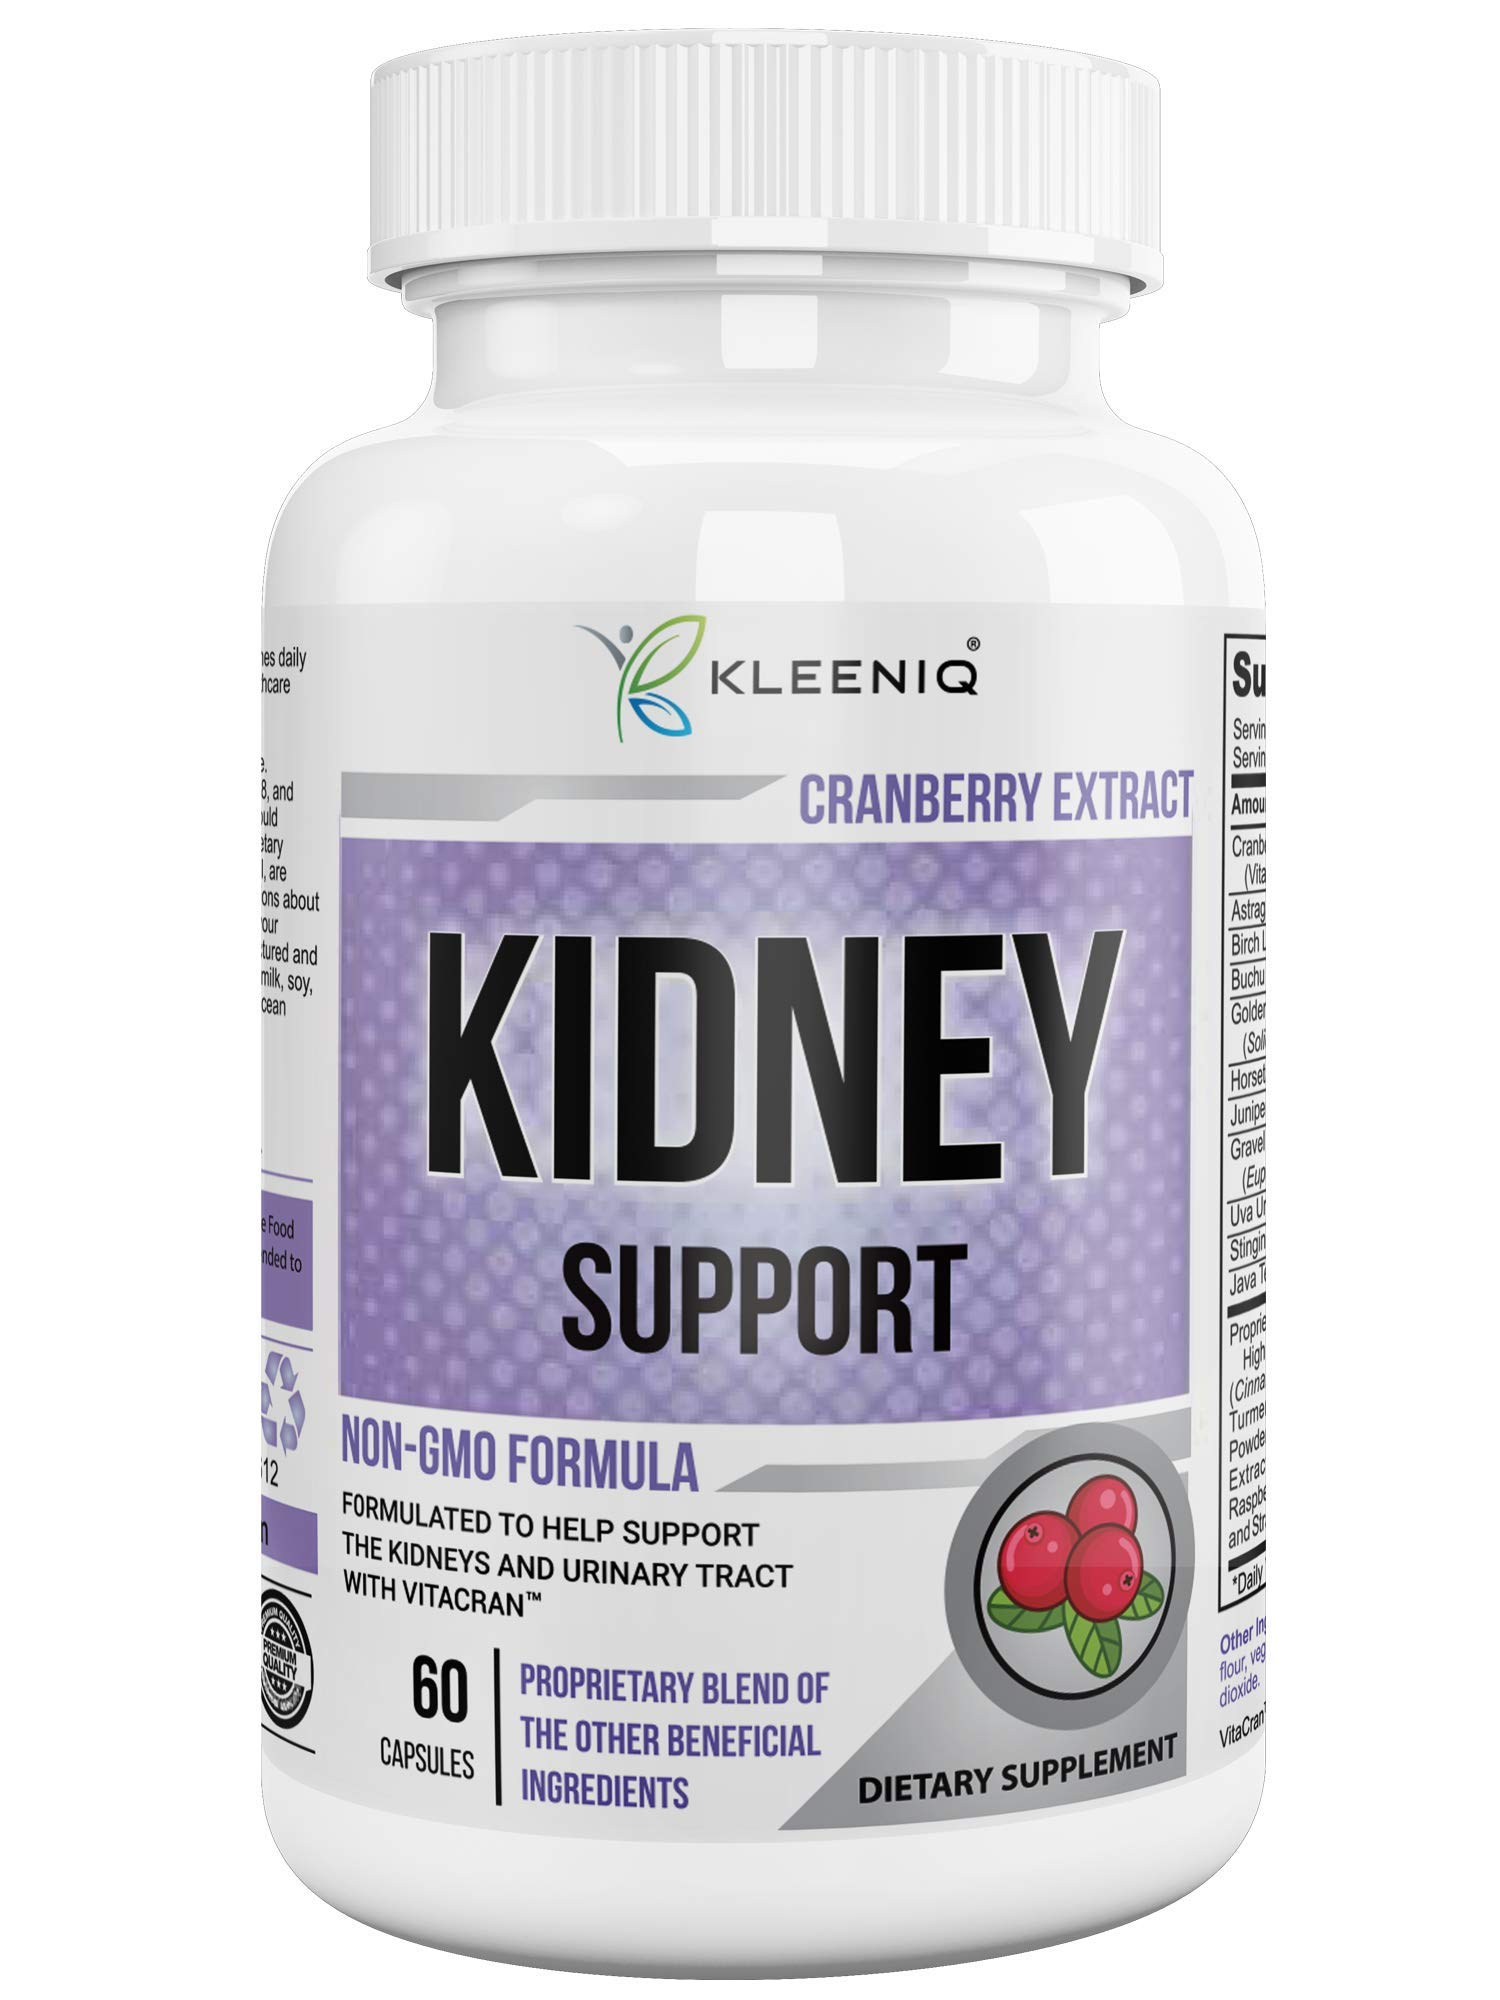 Kidney Cleanse Support Detox Supplement – with Organic Cranberry Extract – Helps Support The Healthy Kidneys and Urinary Tract - 60 Vegetarian Capsules